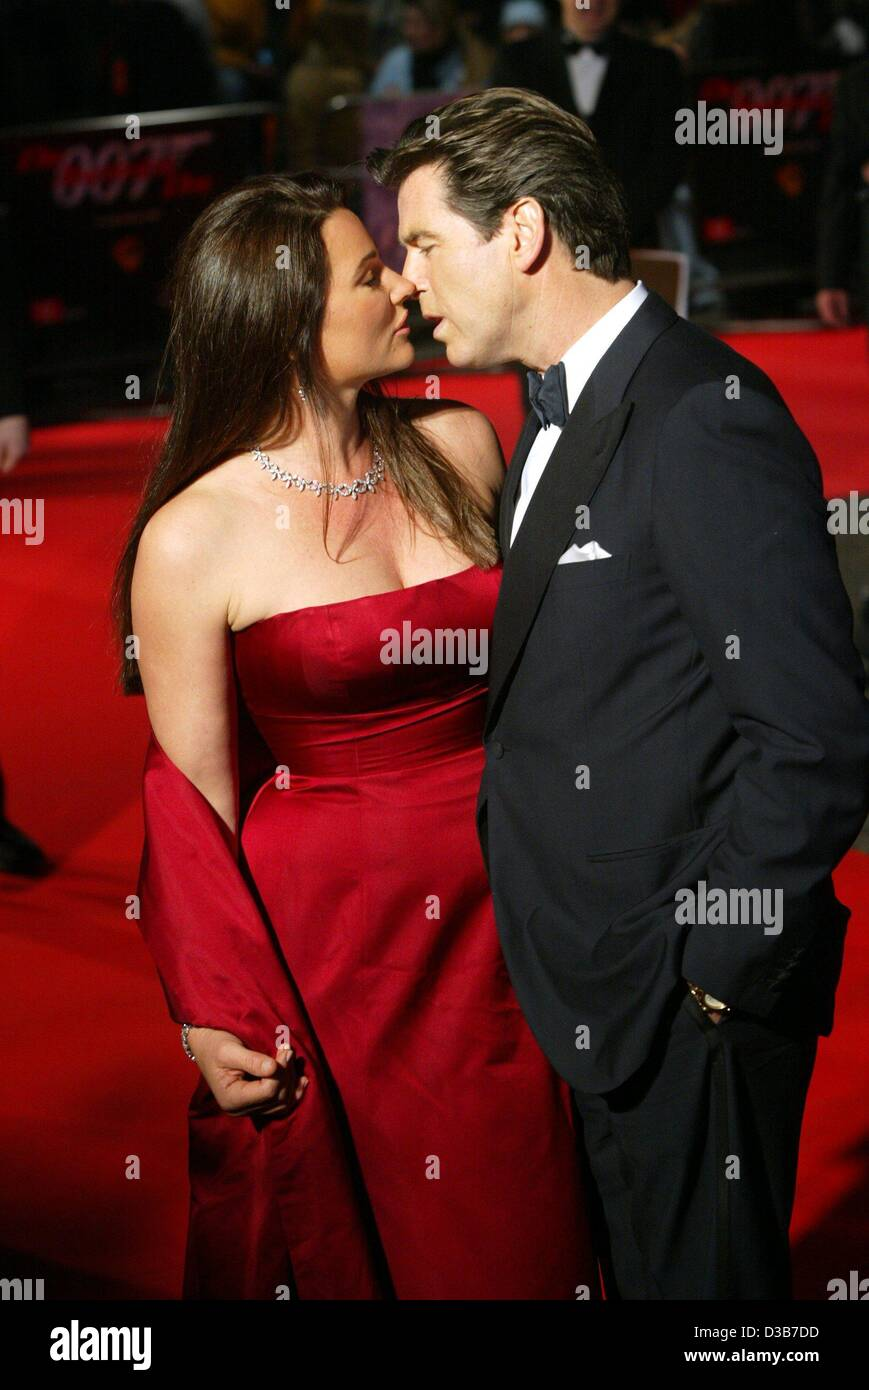 Dpa Irish Actor Pierce Brosnan Is Kissing His Wife